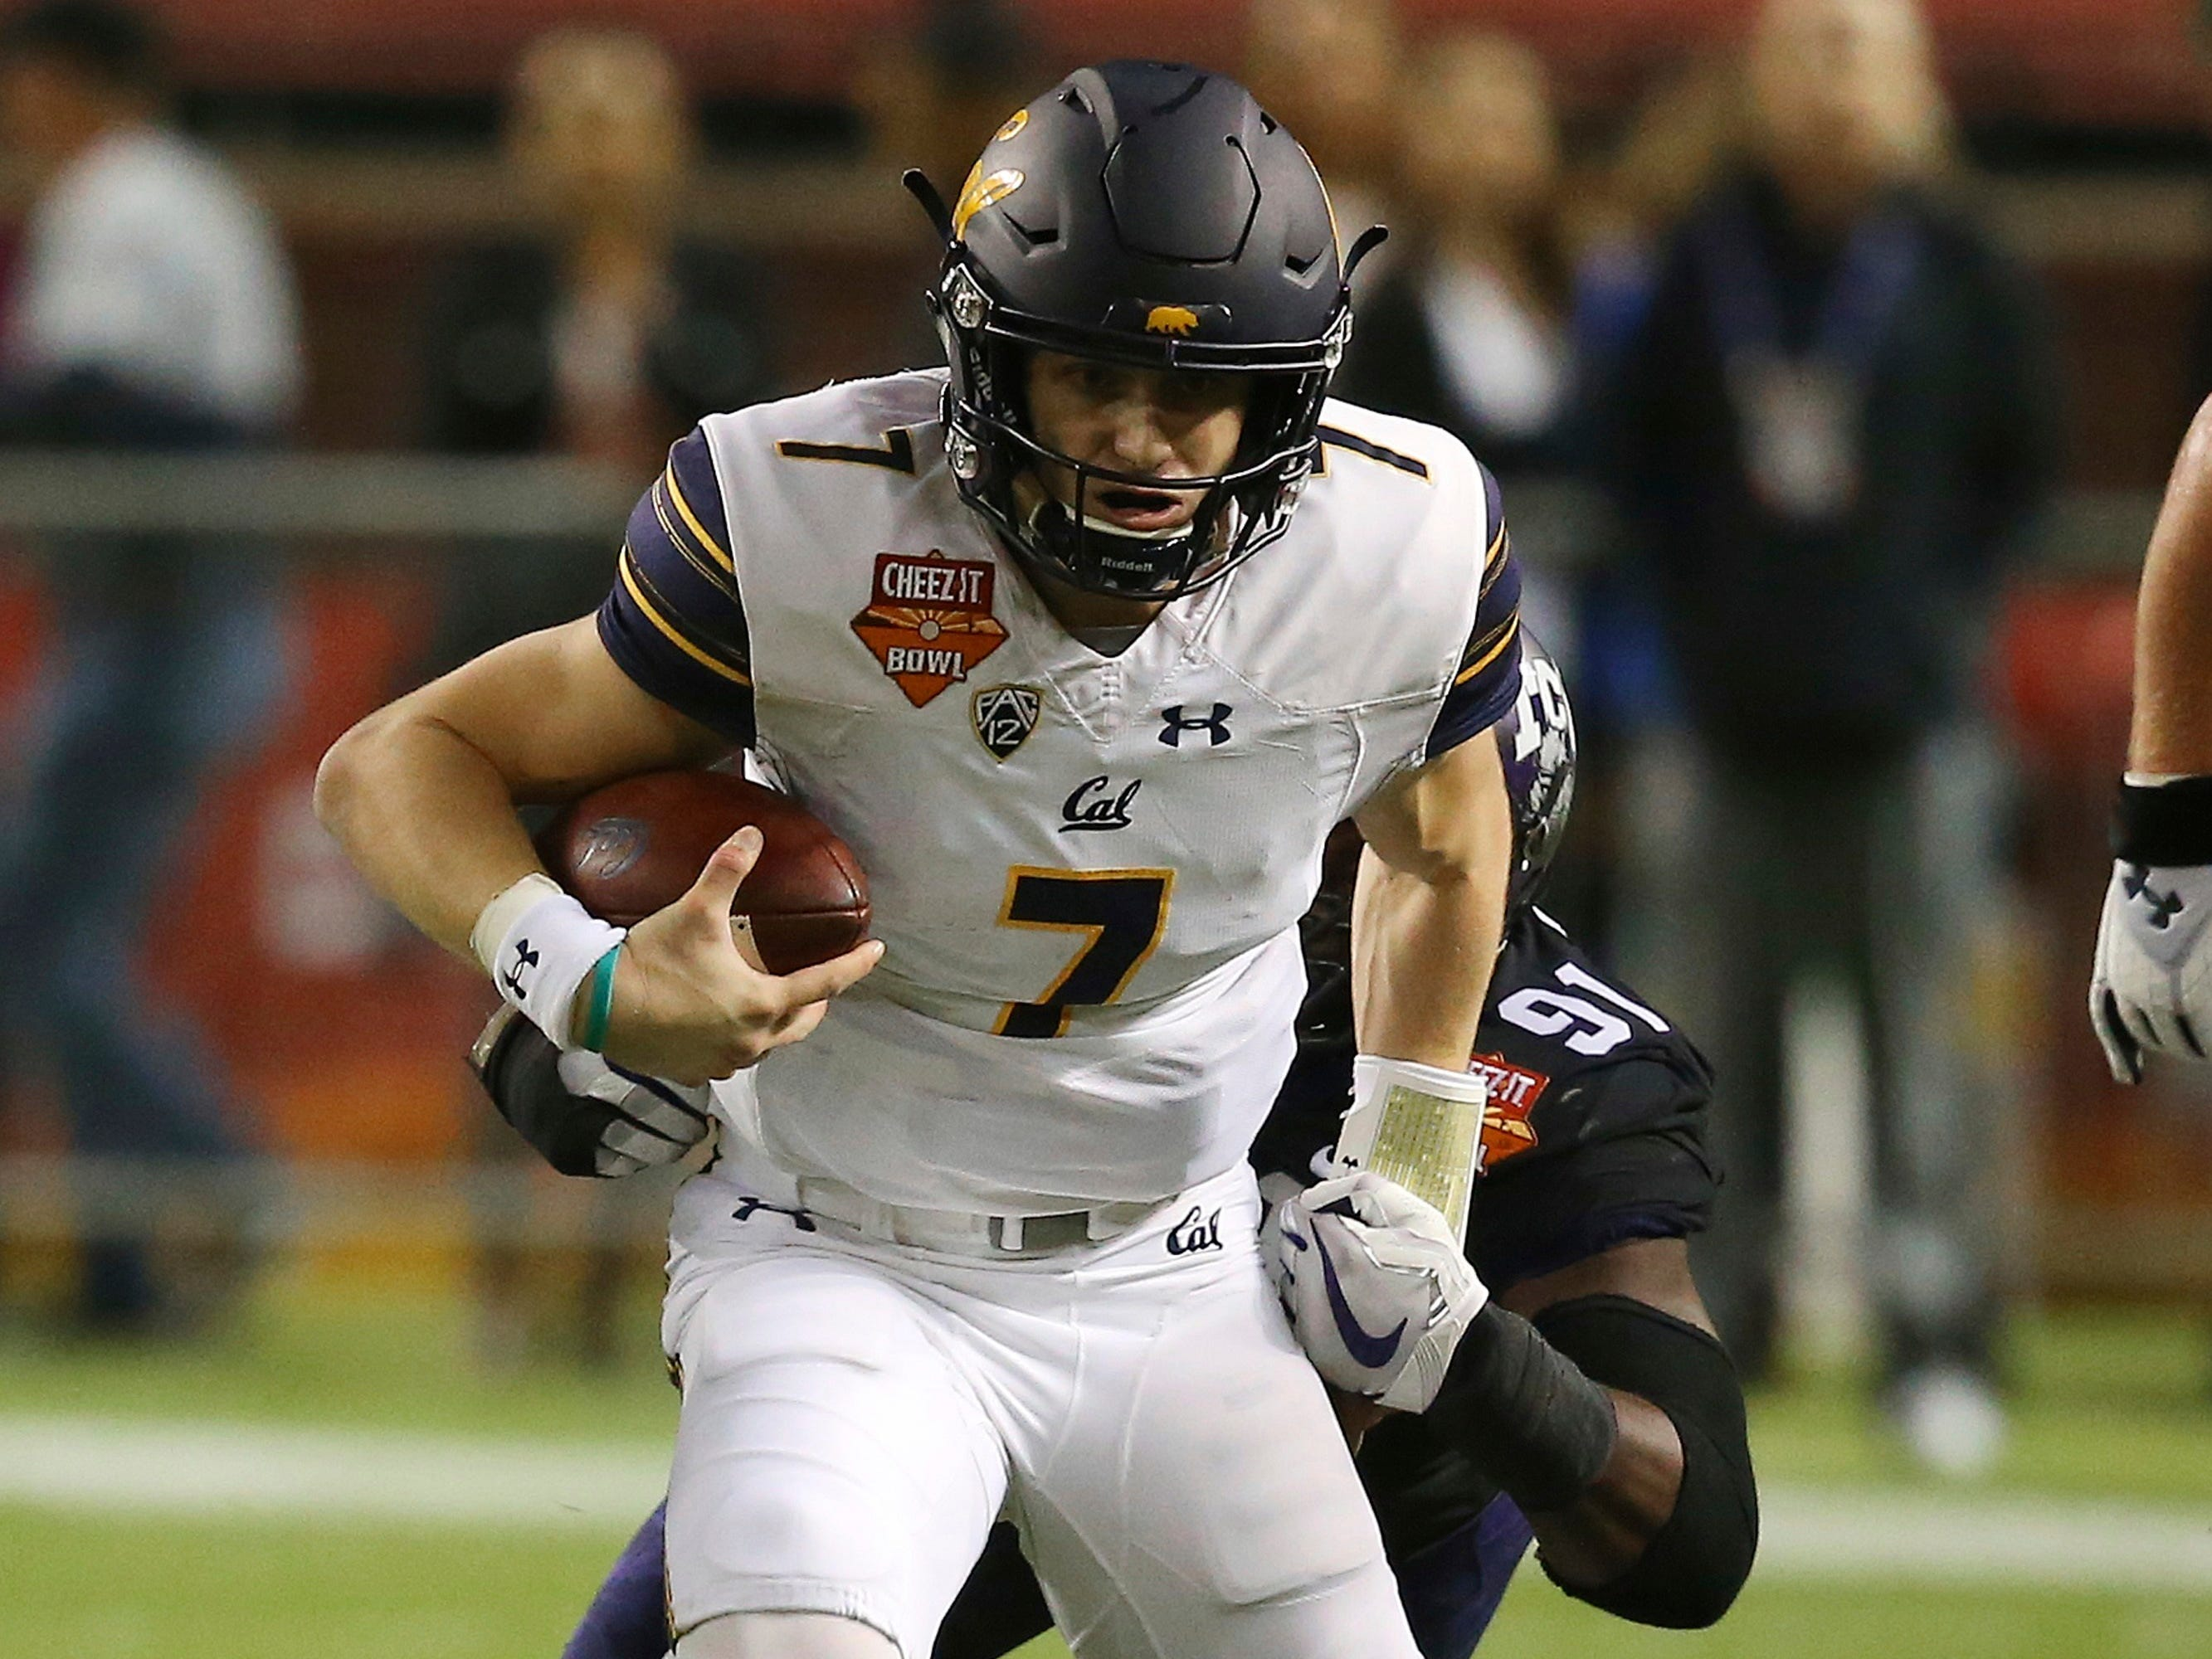 California quarterback Chase Garbers (7) gets brought down by TCU defensive end L.J. Collier (91) during the first half of the Cheez-It Bowl NCAA college football game Wednesday, Dec. 26, 2018, in Phoenix.